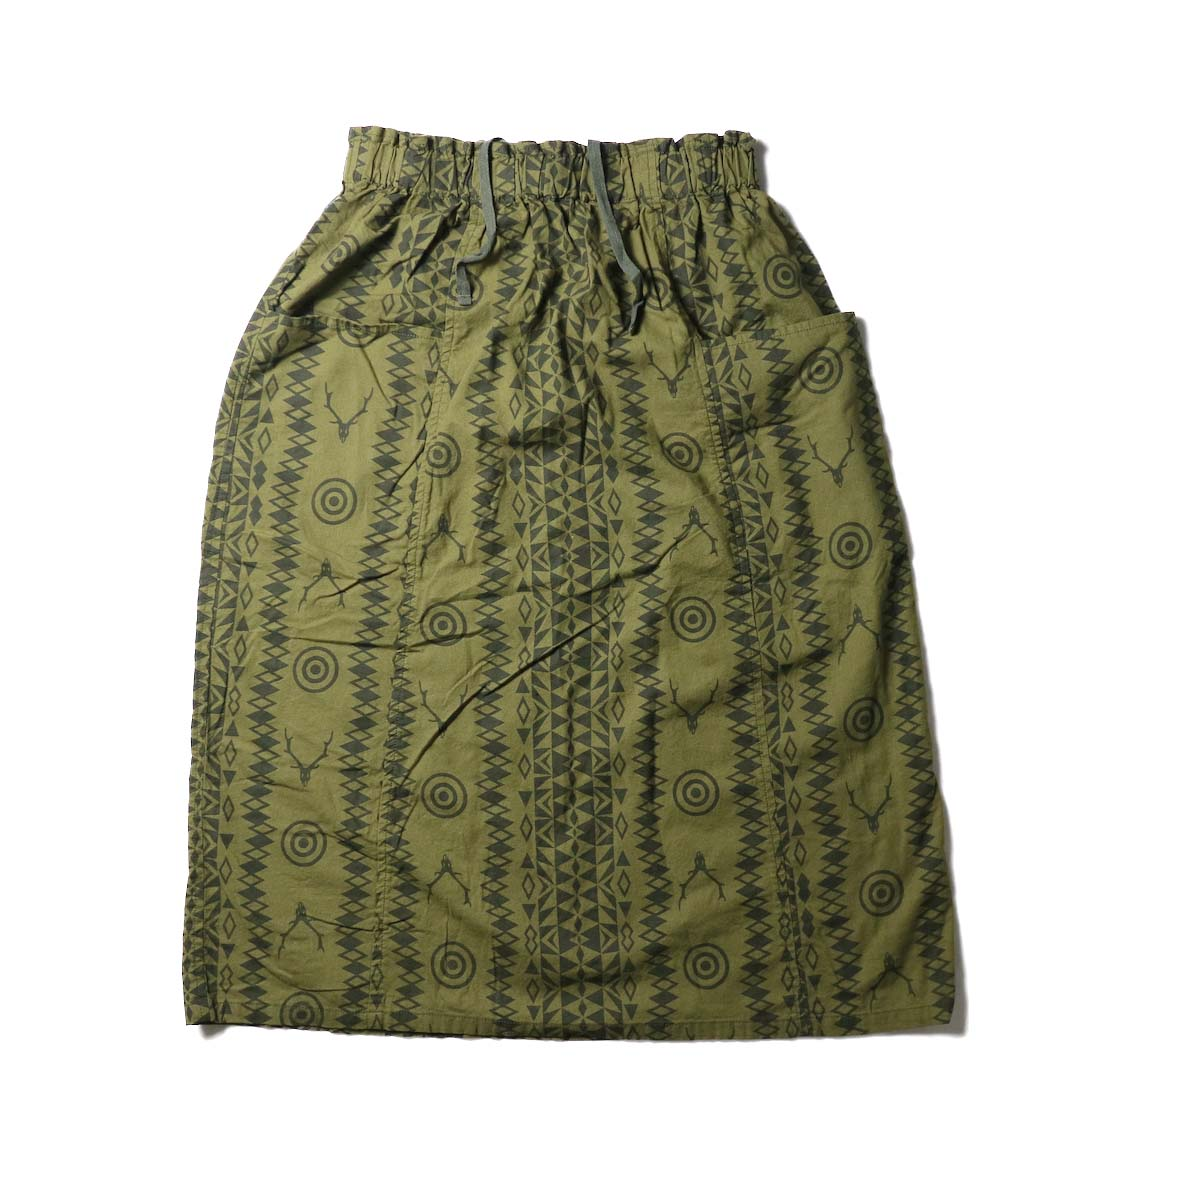 SOUTH2 WEST8 / Army String Skirt -Flannel Pt. (Skull & Target)